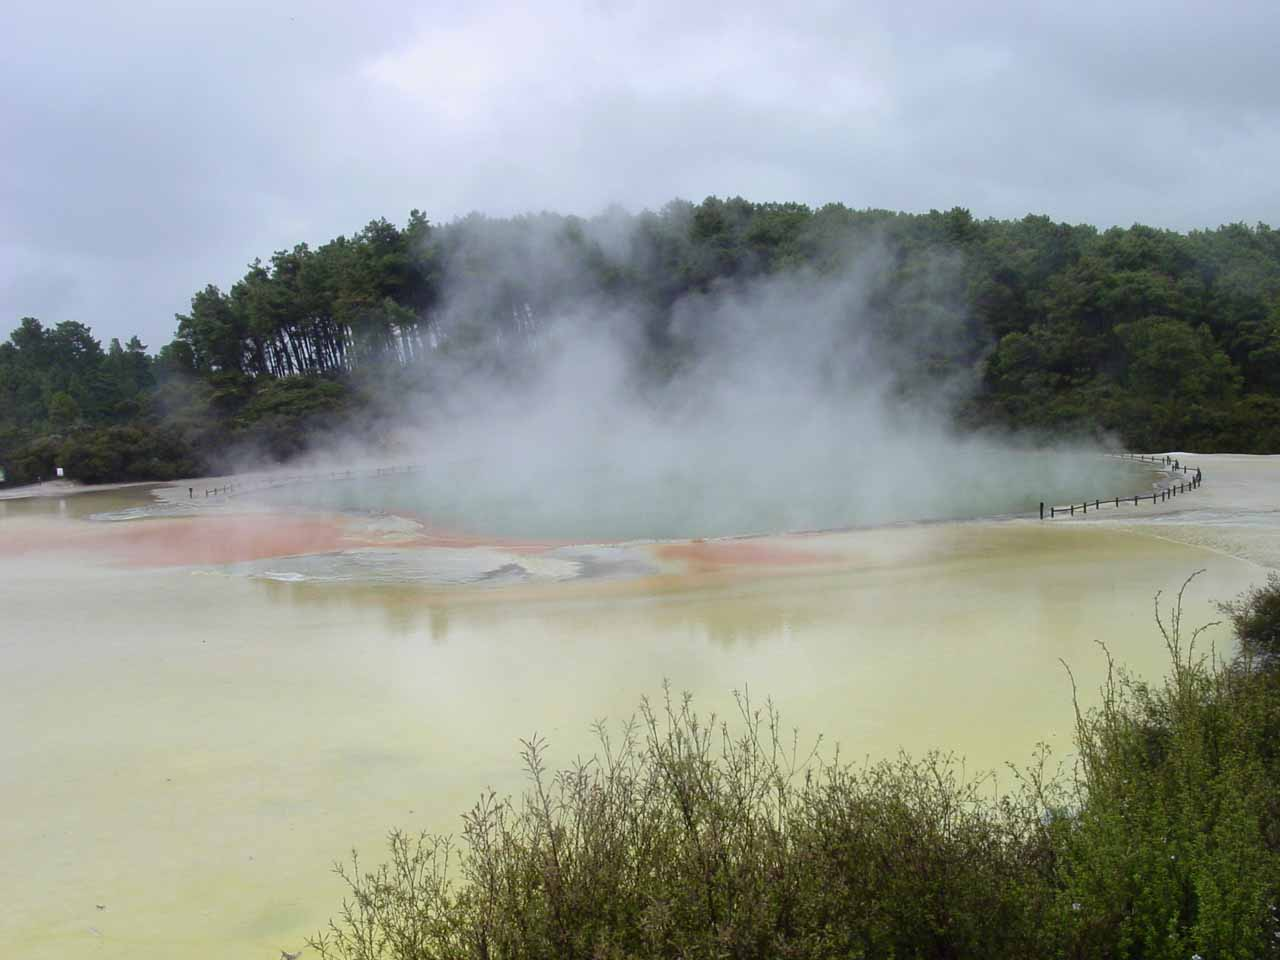 A little further to the south of Rotorua was the Wai-o-tapu Thermal Park, whose main two features were the Lady Knox Geyser and the Champagne Pool (shown here)